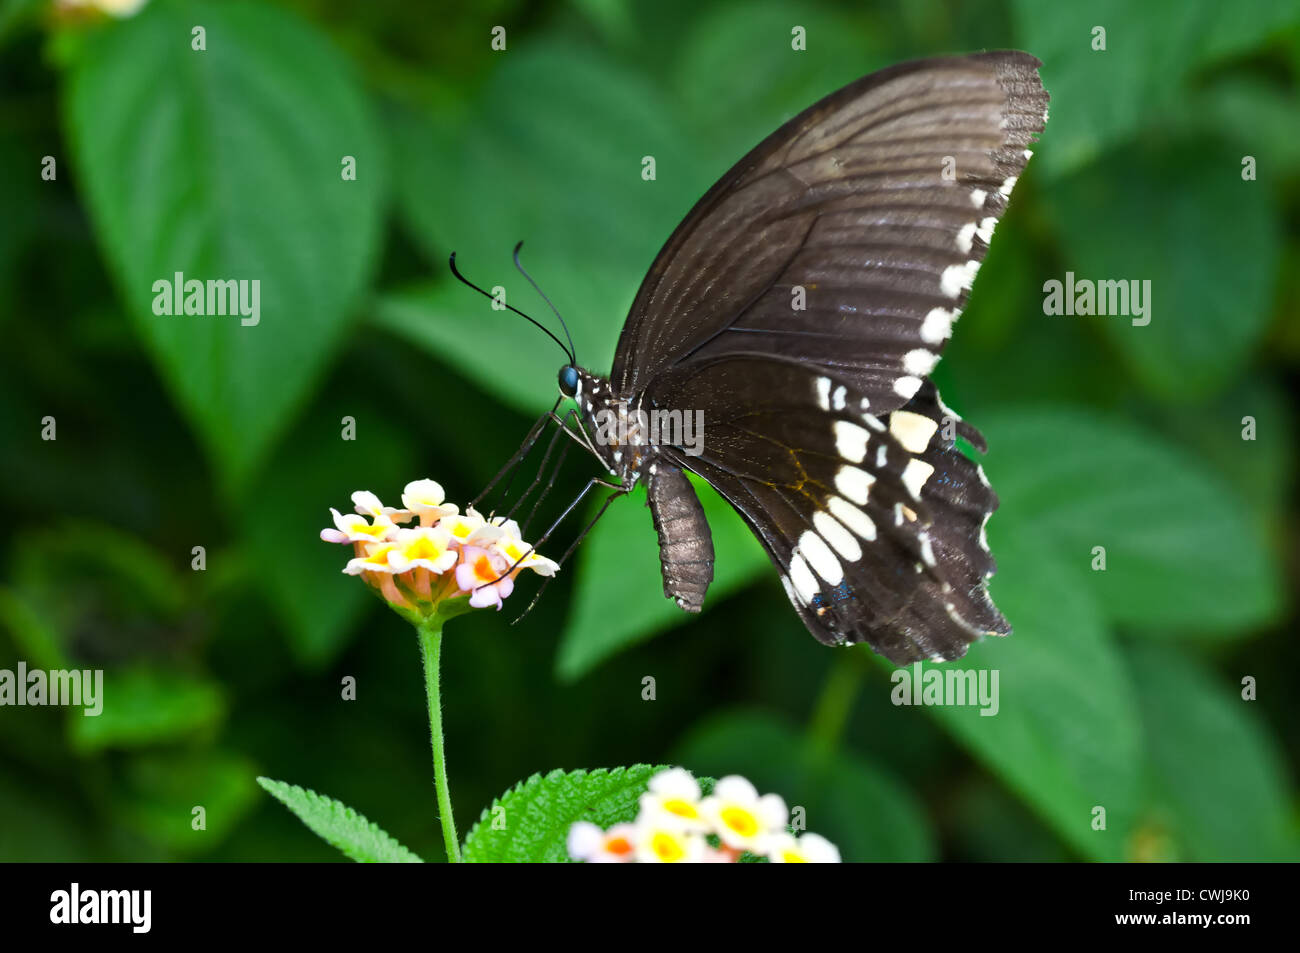 Butterfly, Common Mormon, Papilio polytes, sucking honey from flower, pollinate, close up, copy space - Stock Image